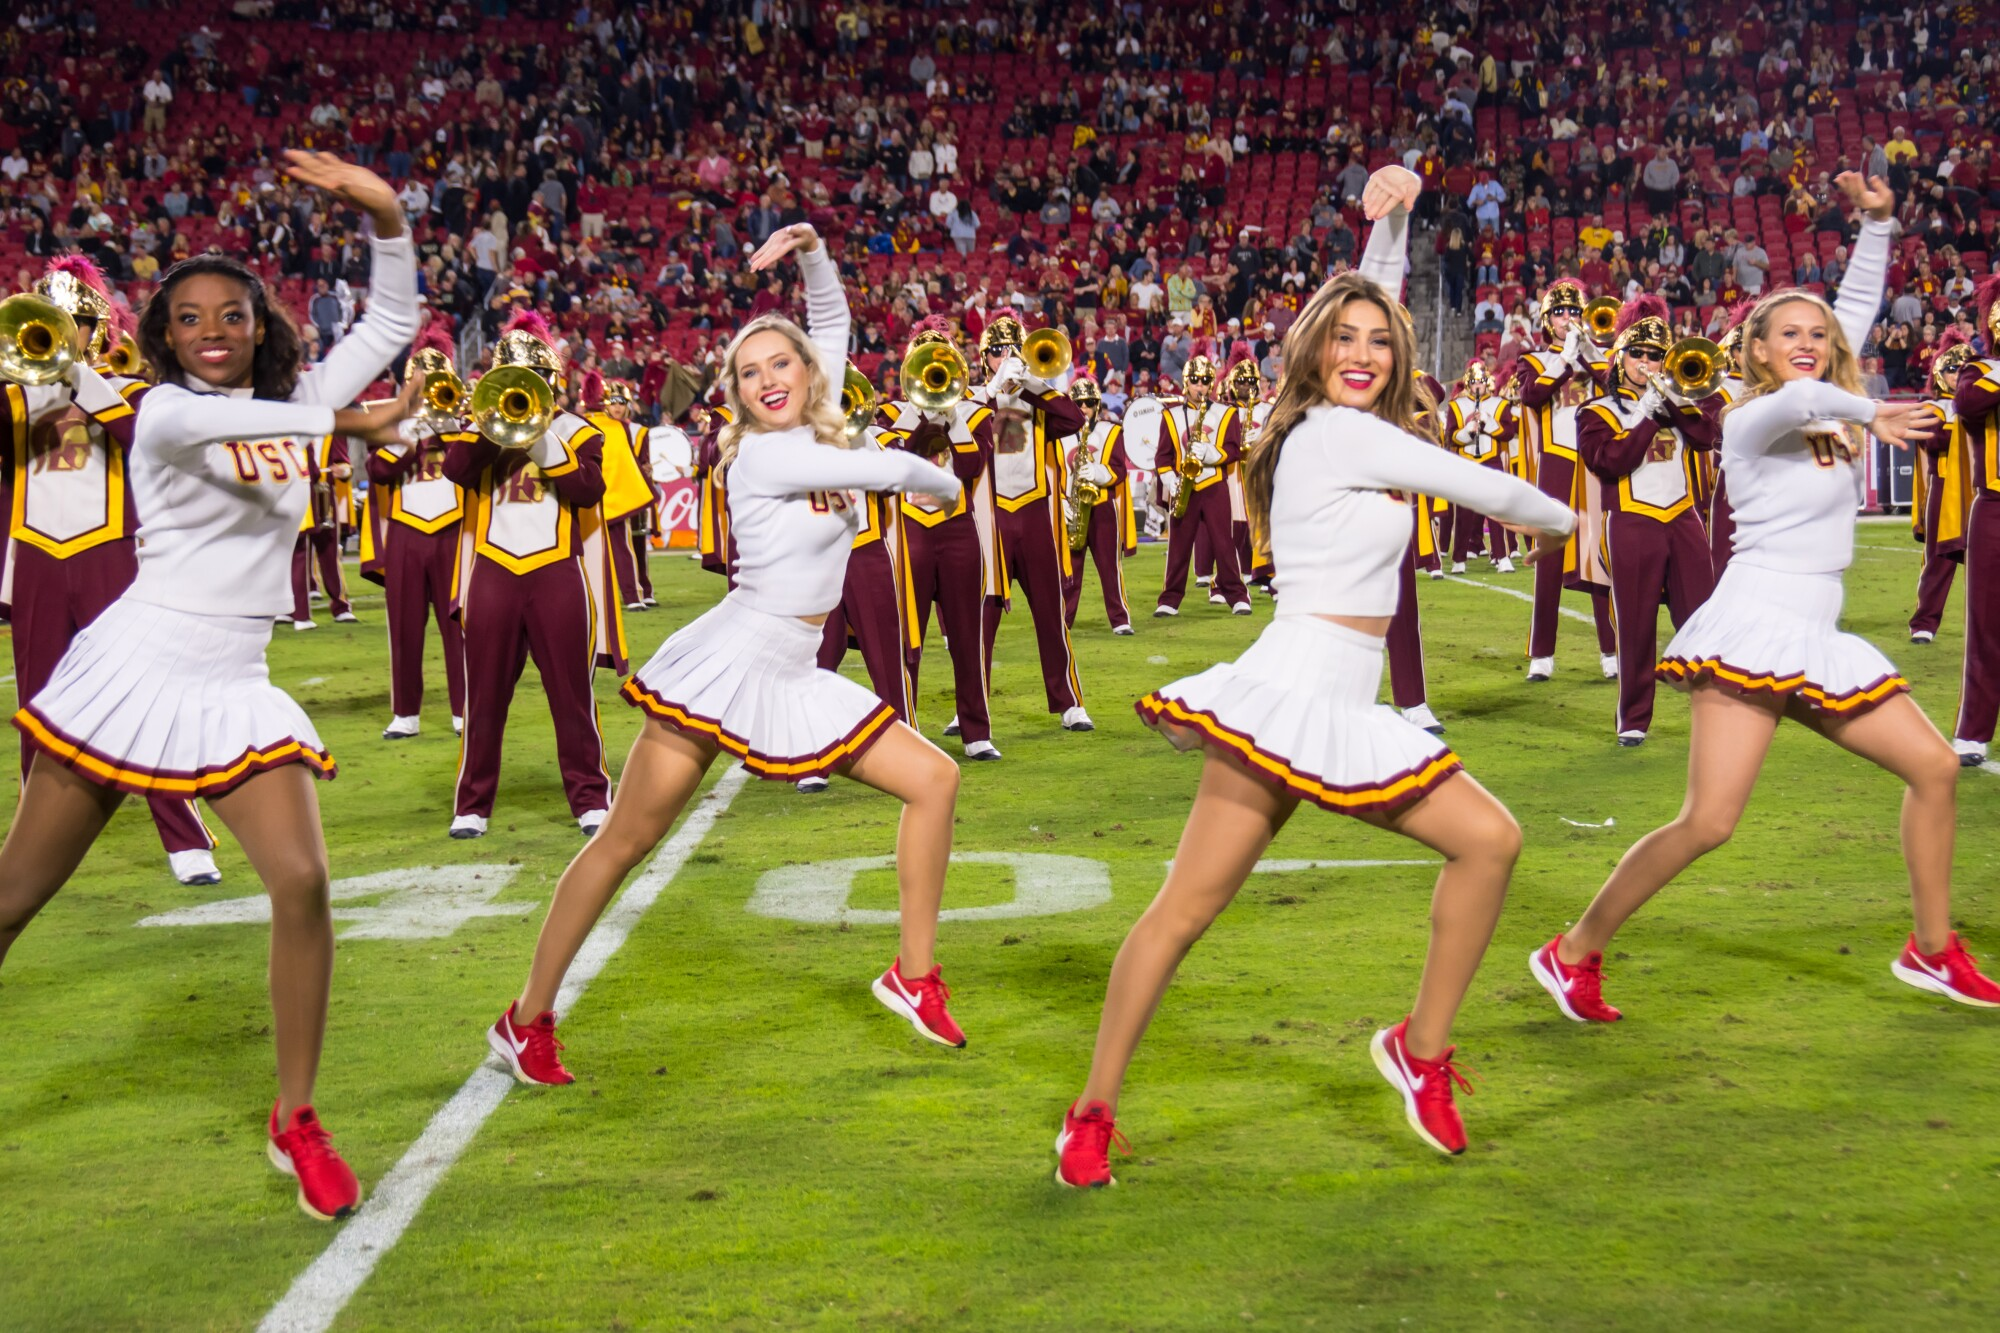 USC song girls including Adrianna Robakowski and Josie Bullen  during a game